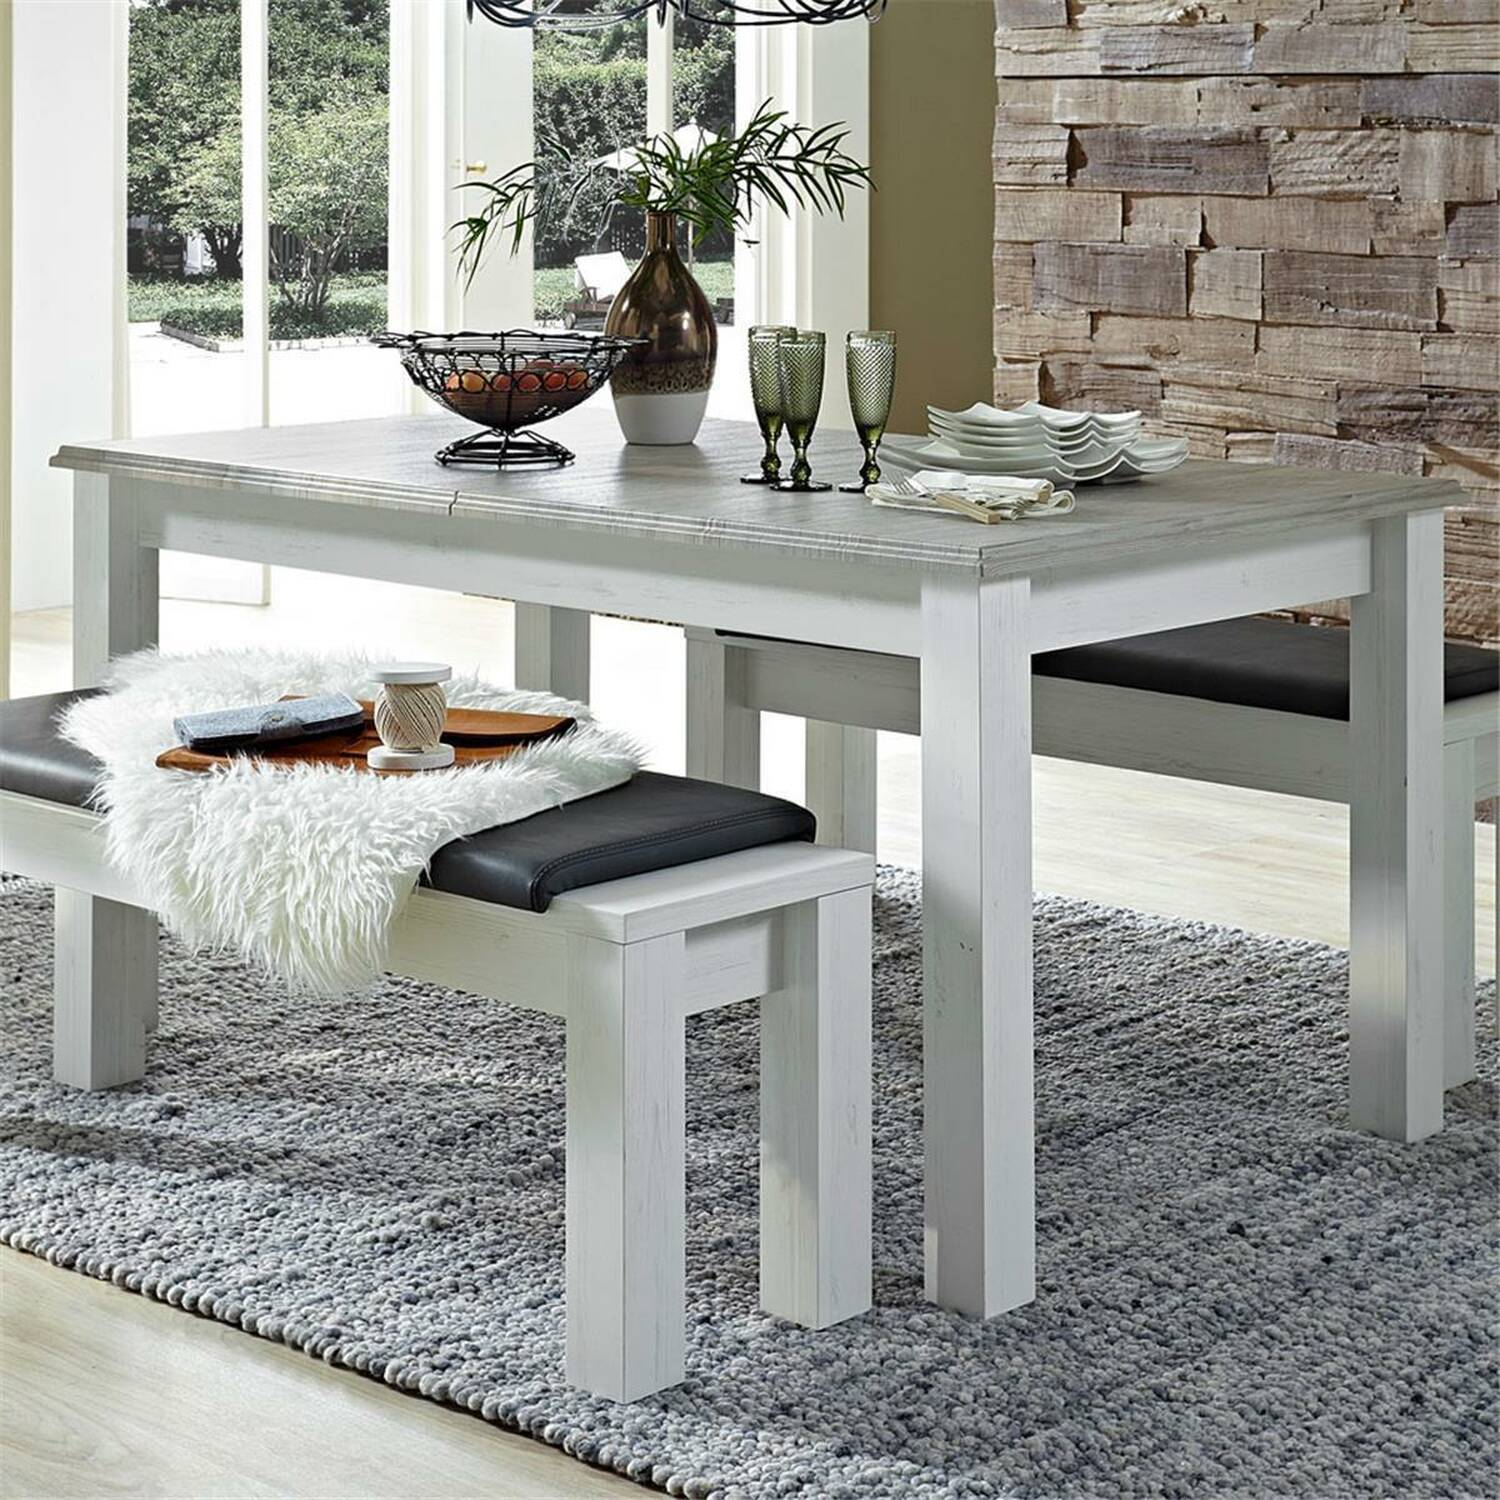 modern country house dining table leer 55 in pine white with abs taupe w h d approx 160 77 90cm